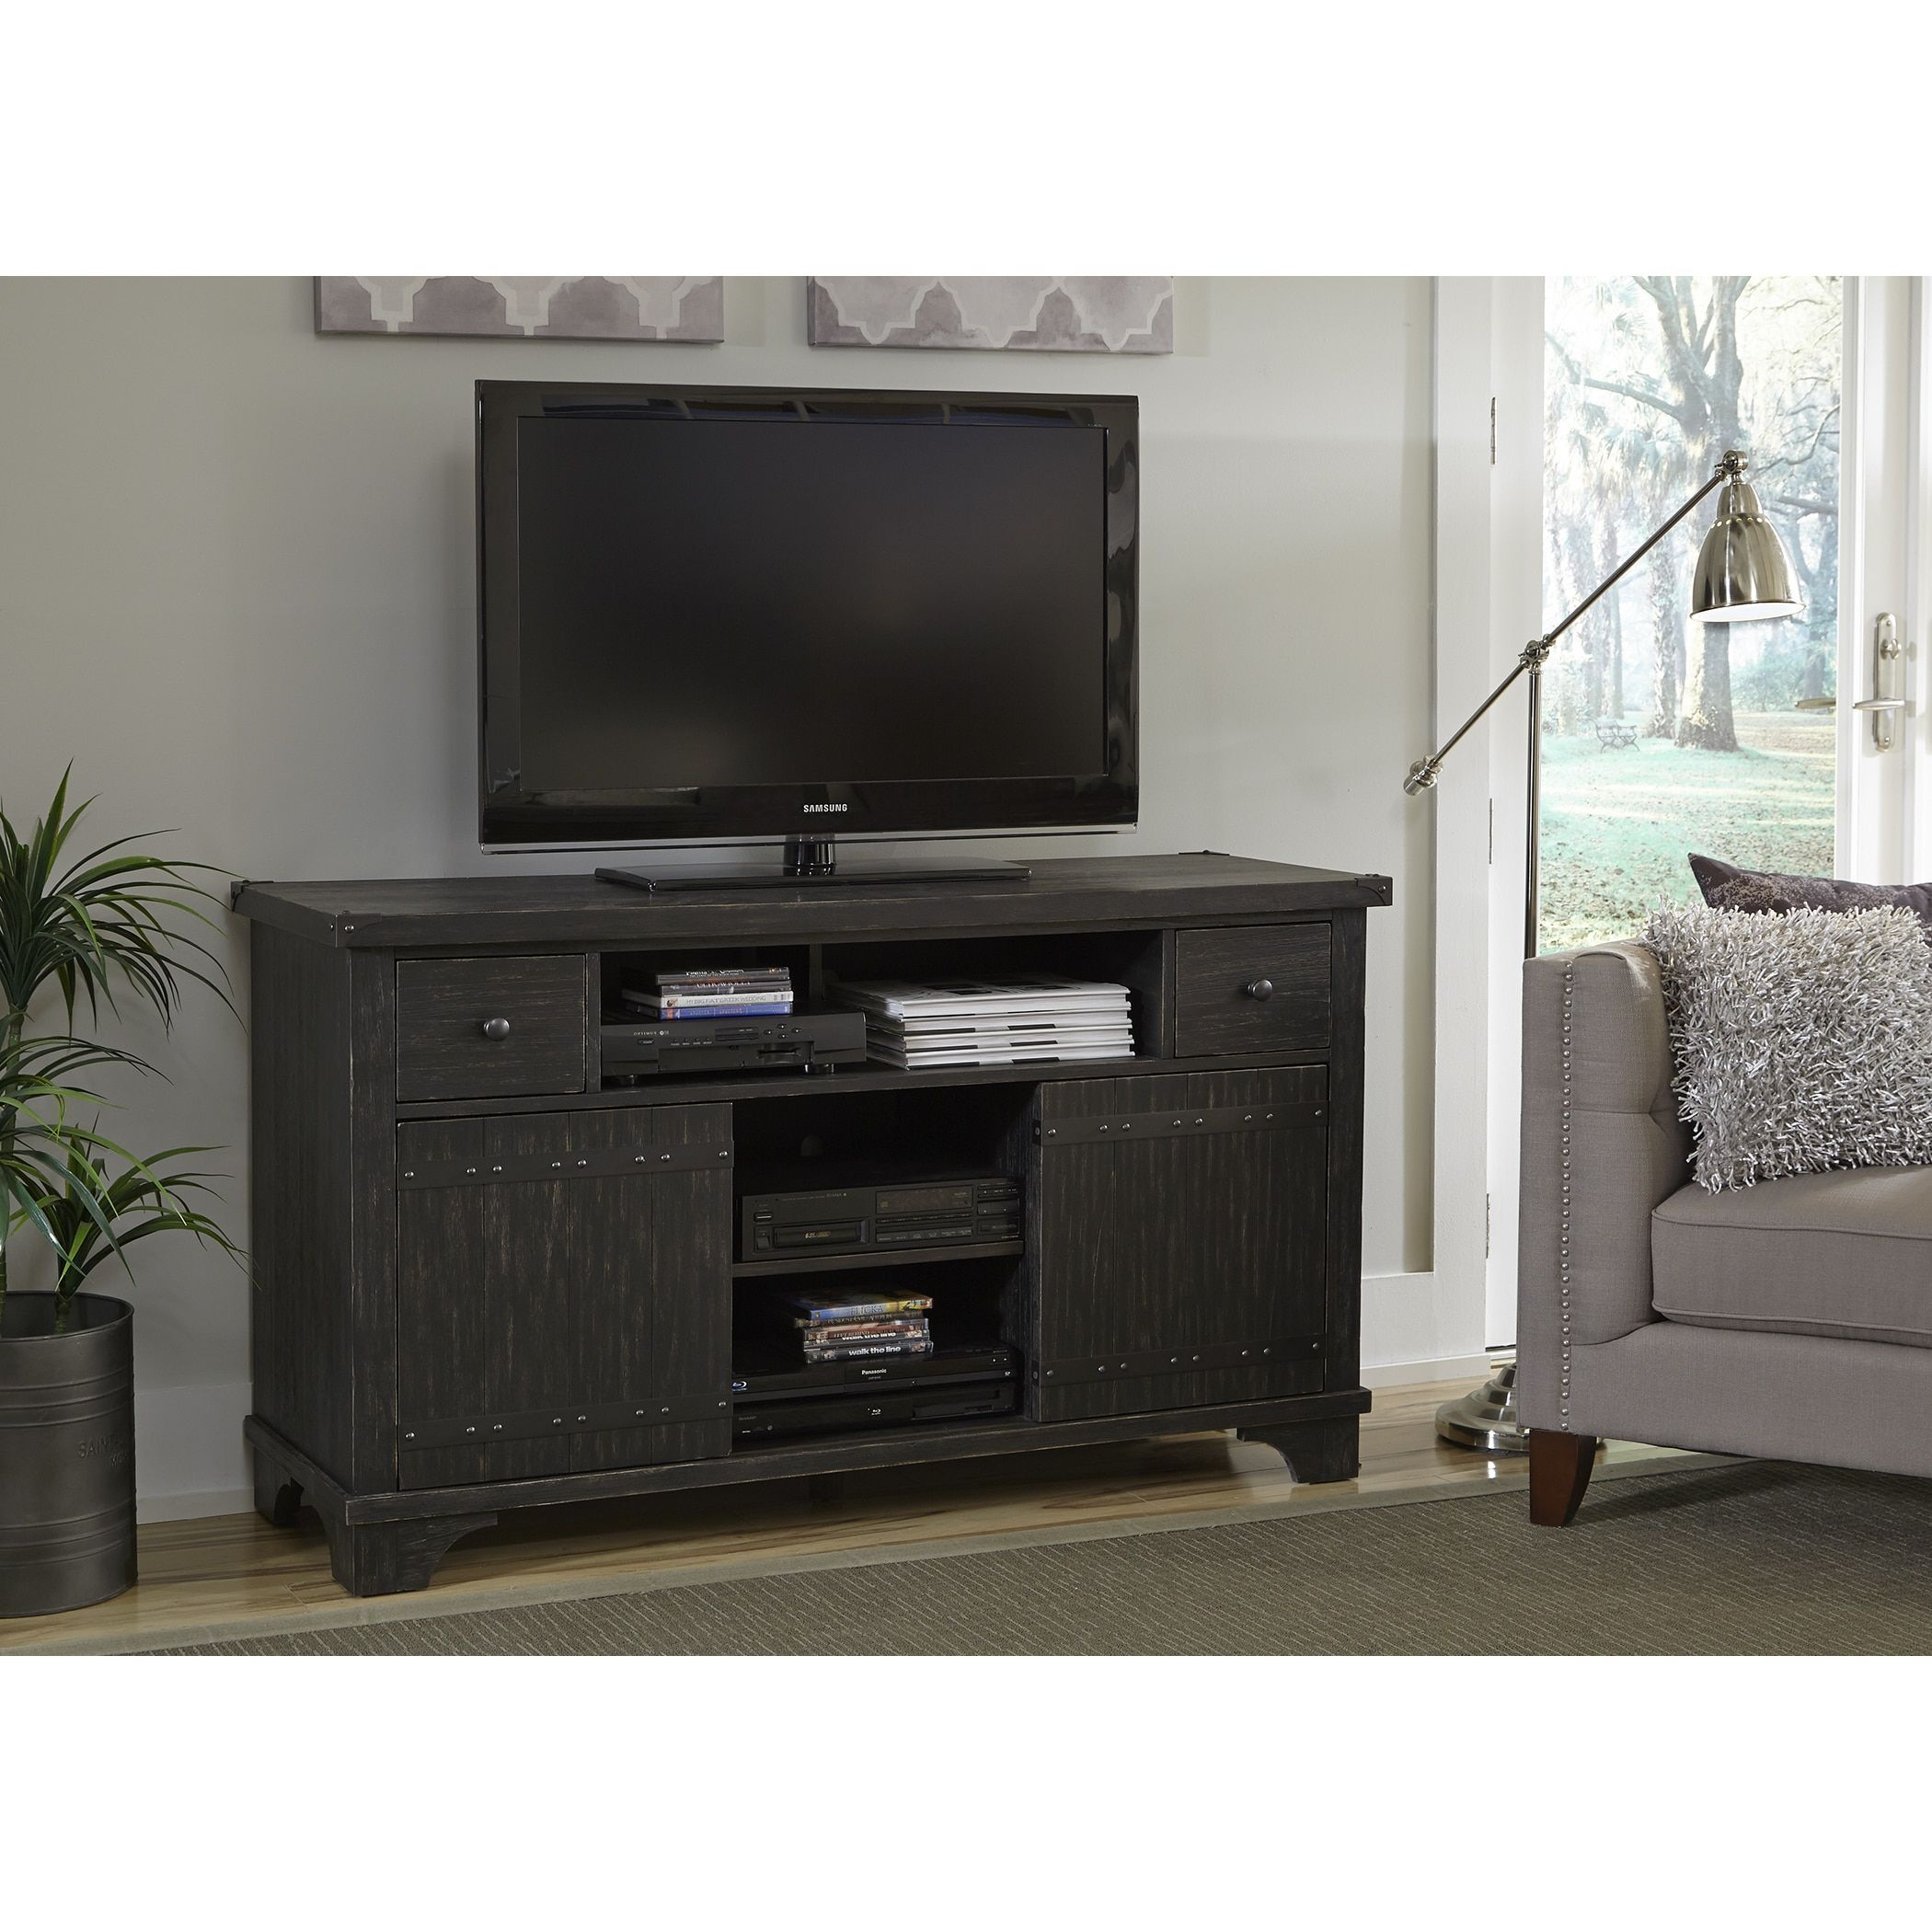 Liberty aspen skies wire brushed black inch tv entertainment